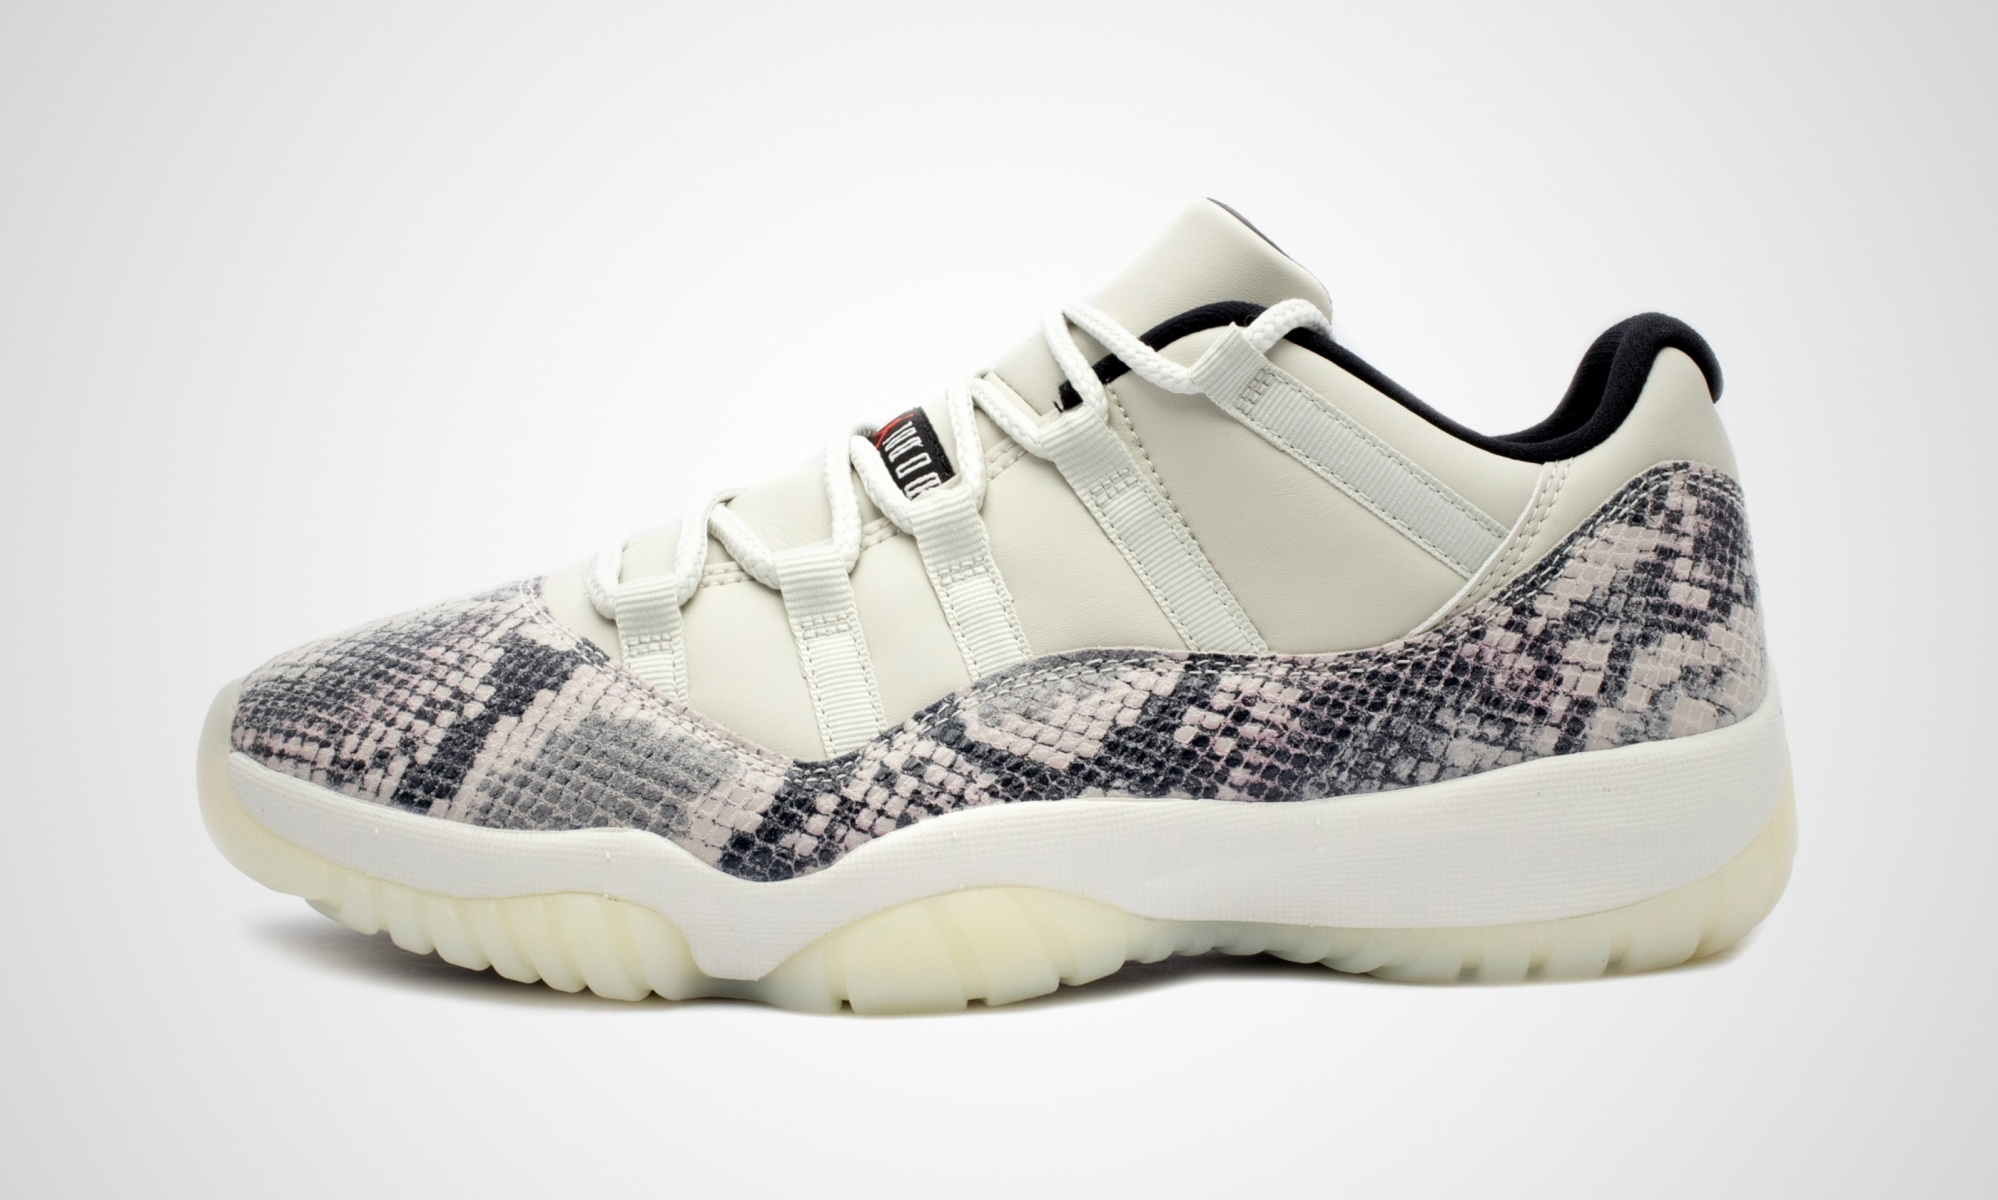 timeless design on feet at no sale tax Nike Air Jordan 11 Low Snakeskin Light Bone